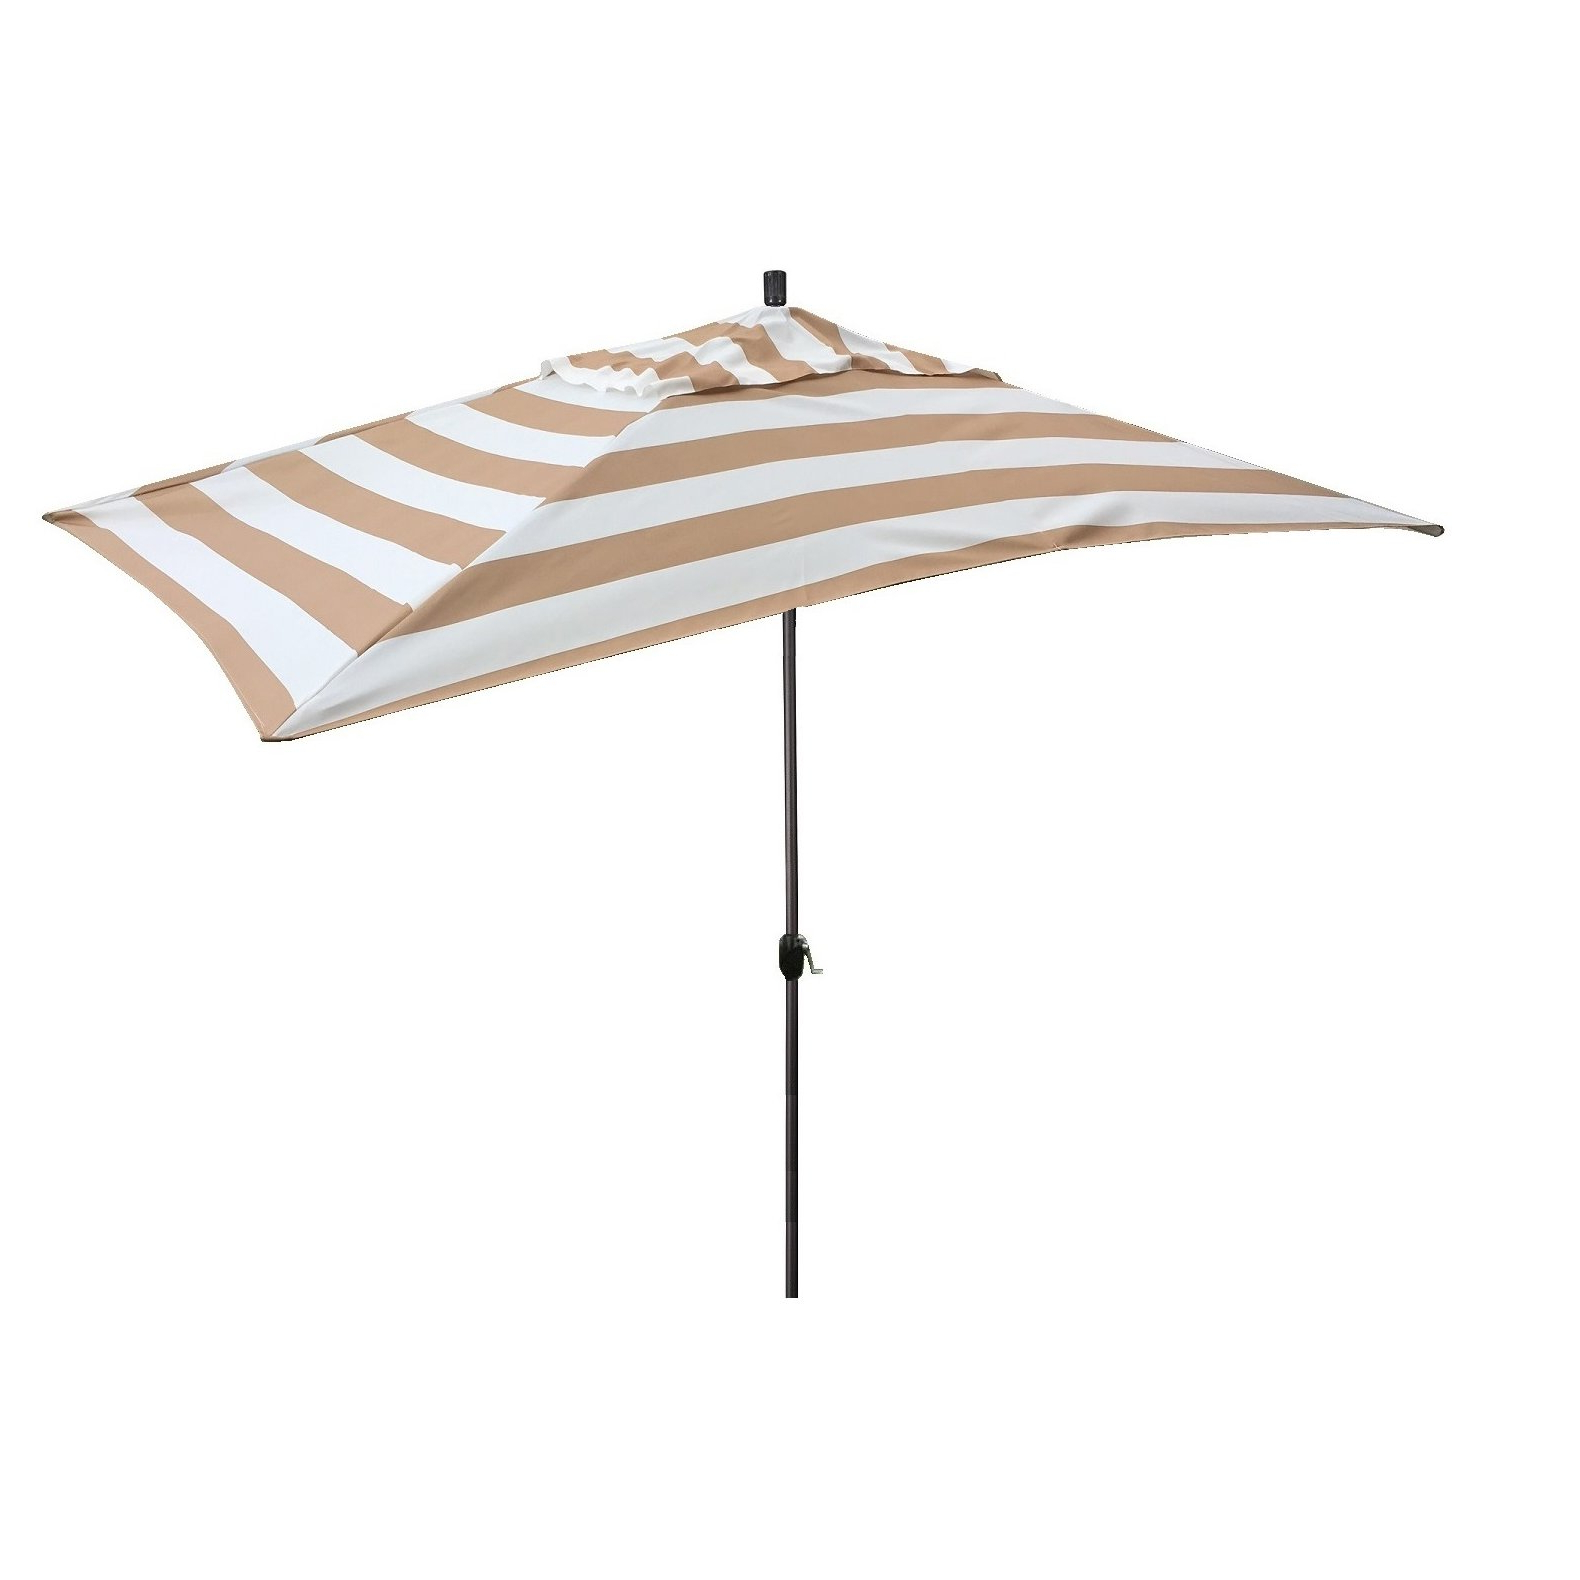 Well Liked Jalynn 10' X 6' Rectangular Market Umbrella Inside Sherlyn Rectangular Market Umbrellas (View 16 of 20)